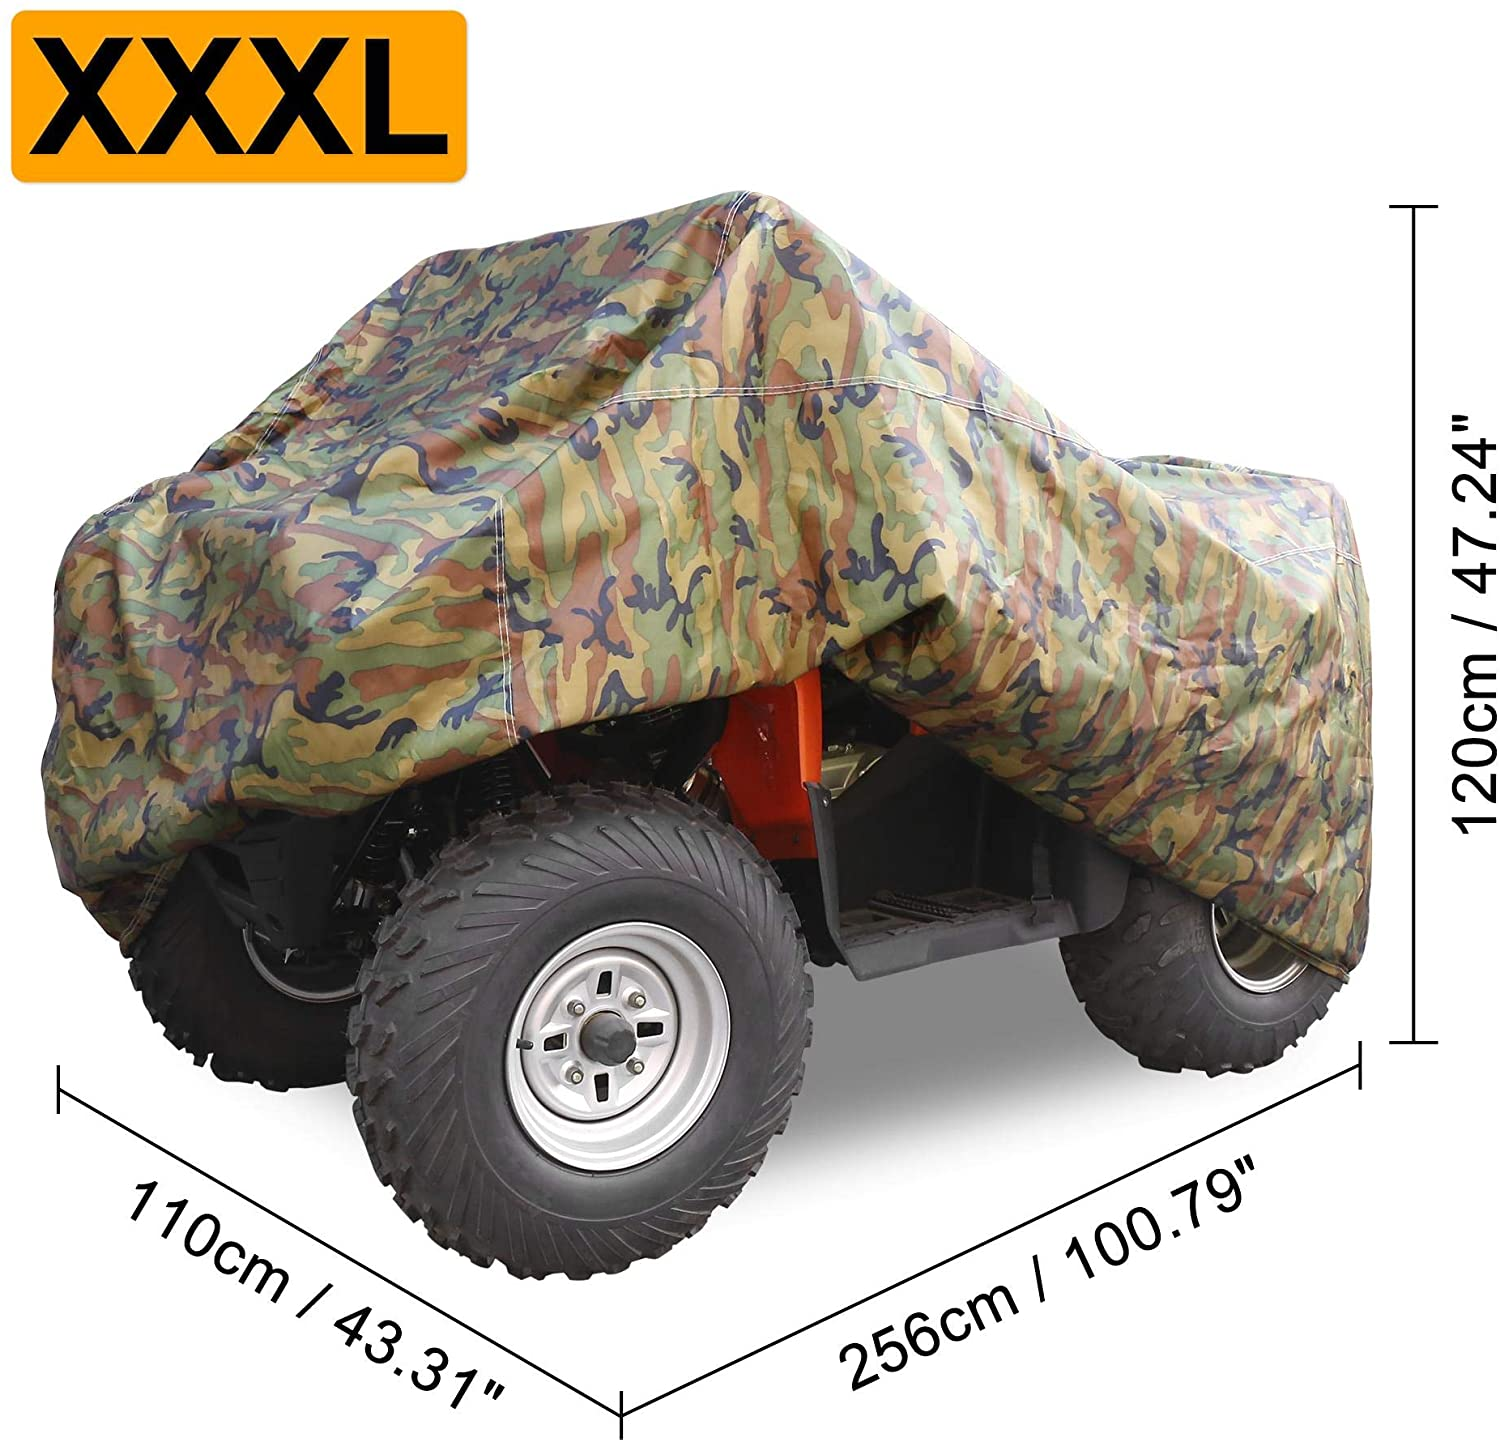 X AUTOHAUX L Camo 79 Inch ATV Quad Covers Waterproof Outdoor Oxford Cloth Durable 4 Wheeler Rain Cover Accessories All Weather UV Protection for Kawasaki for Polaris for Suzuki for Can Am